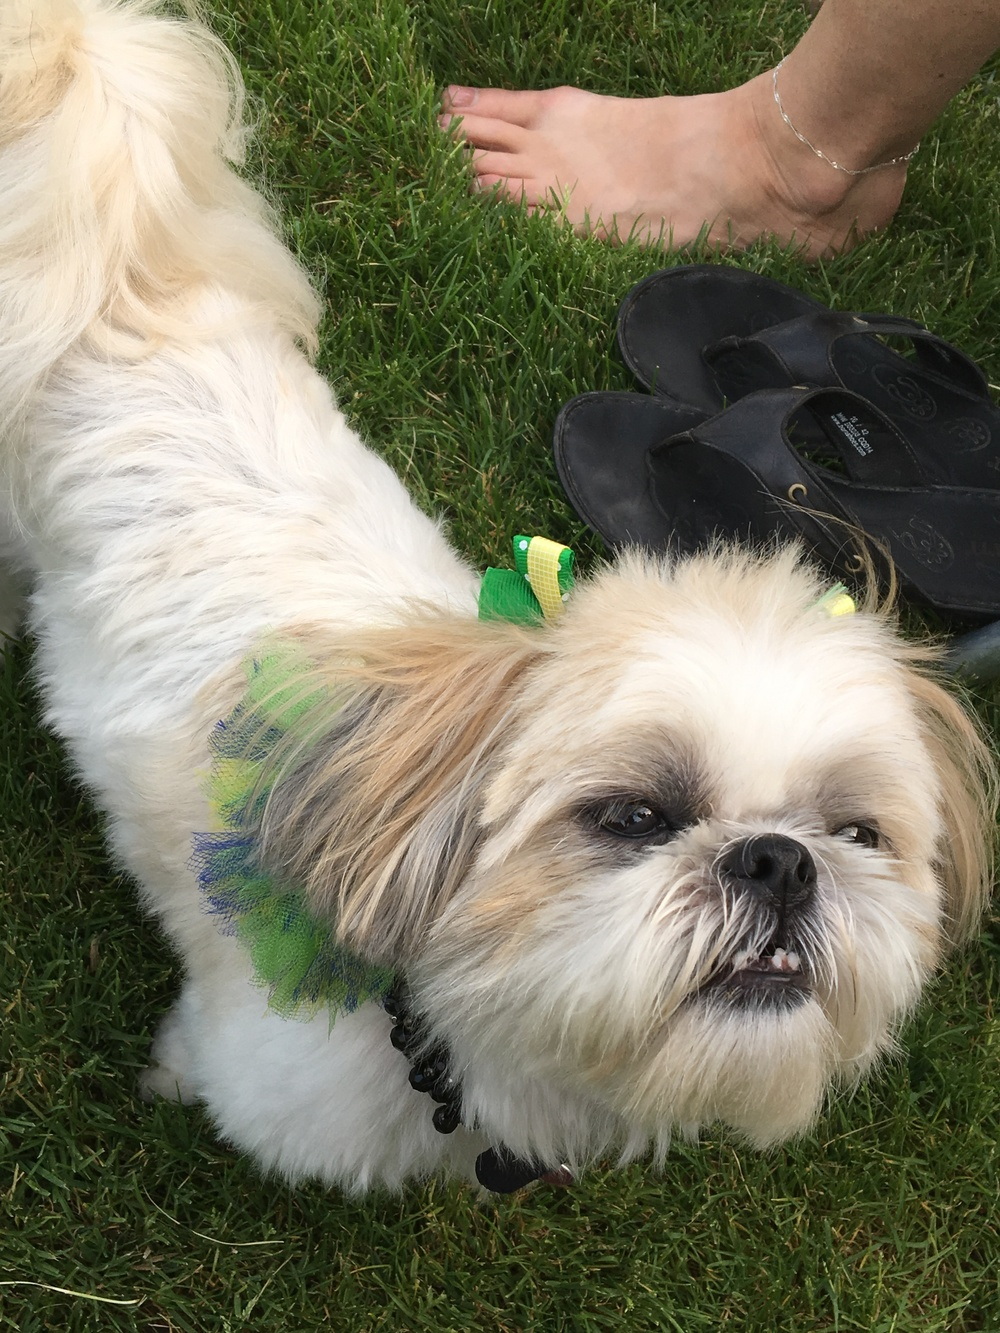 Lindsay's dog, Holly as a cheerleader for team Brazil